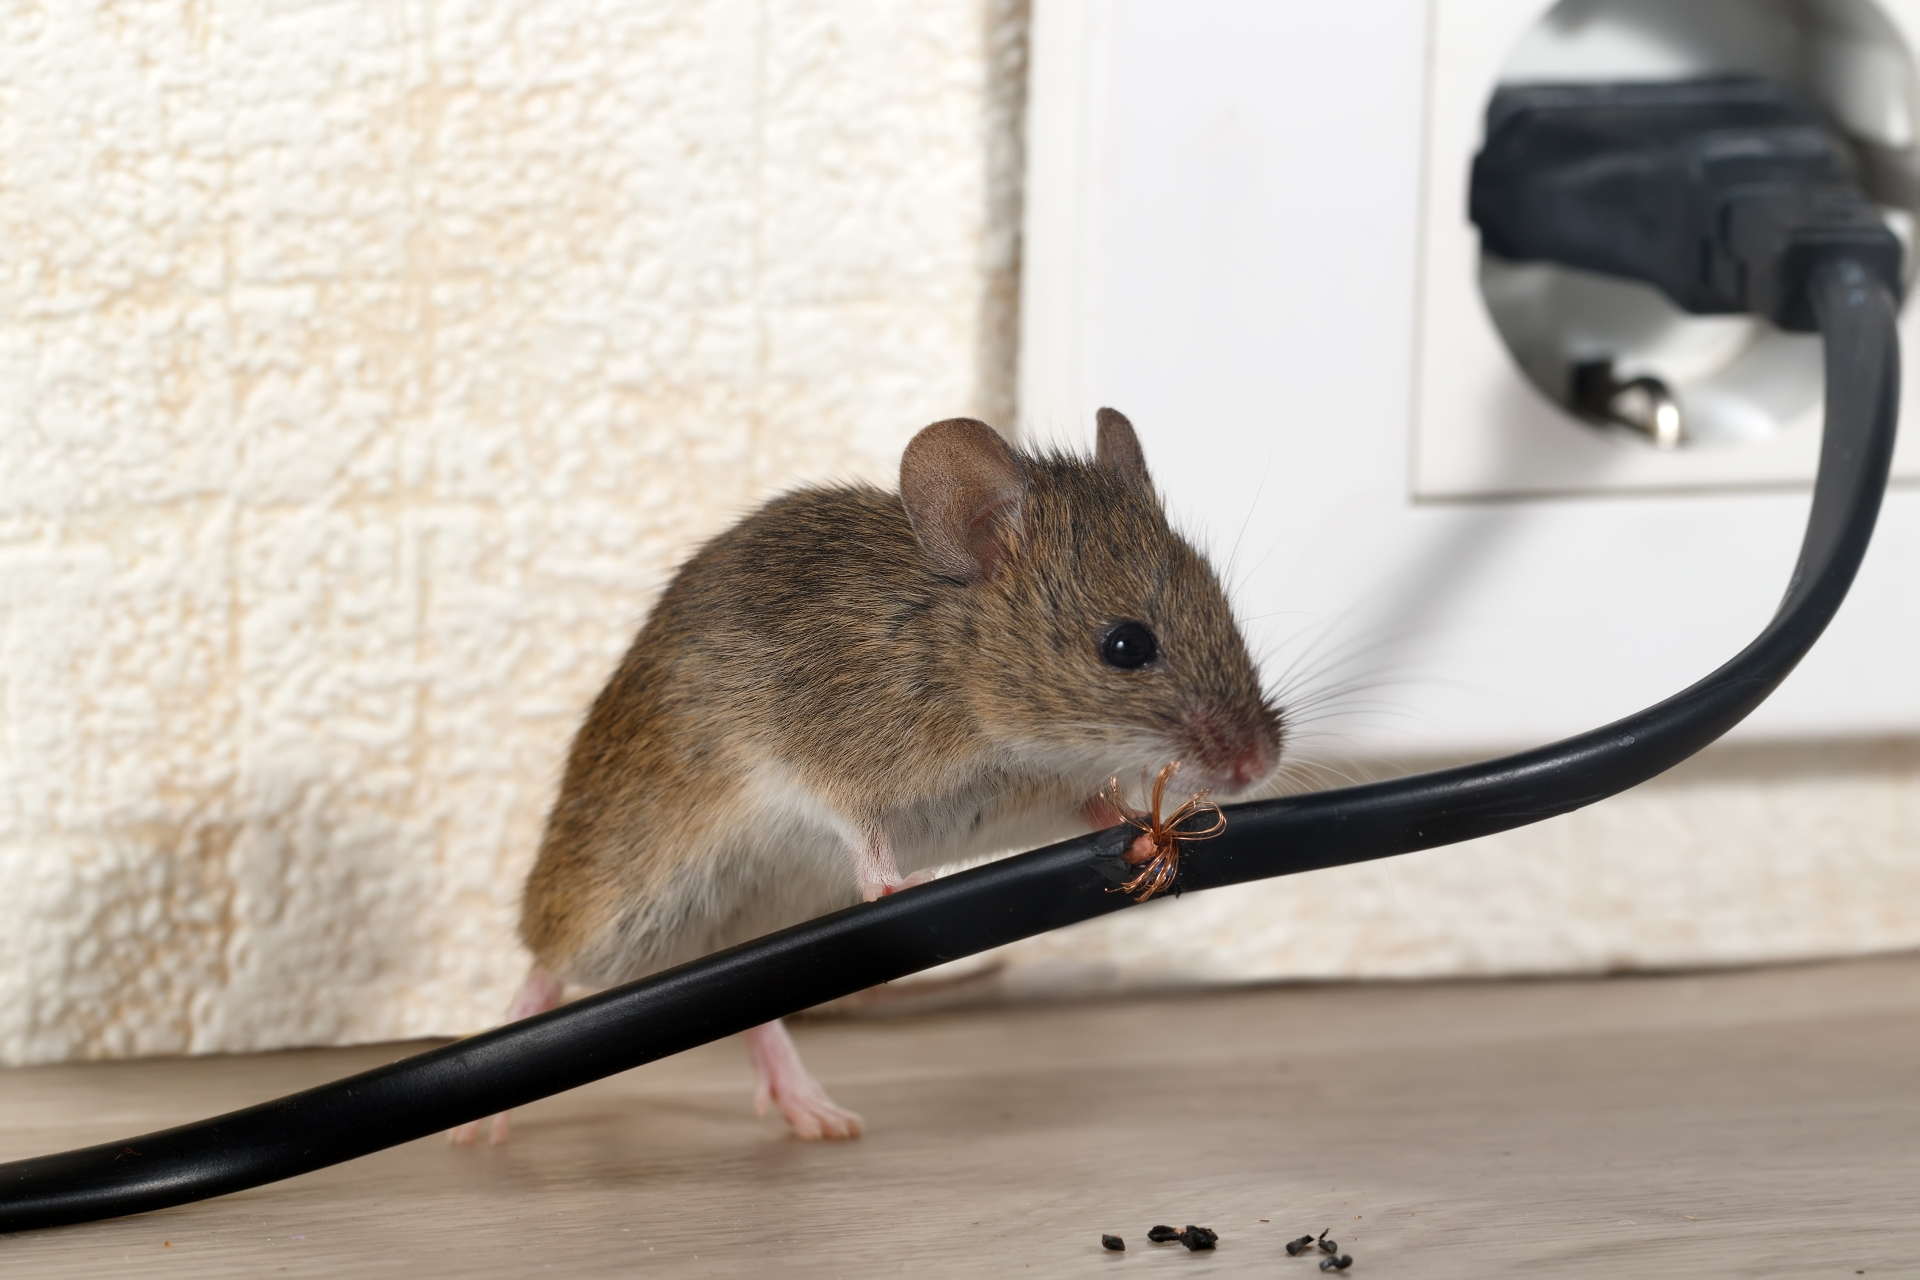 Mice Infestation, Pest Control in Roehampton, SW15. Call Now 020 8166 9746